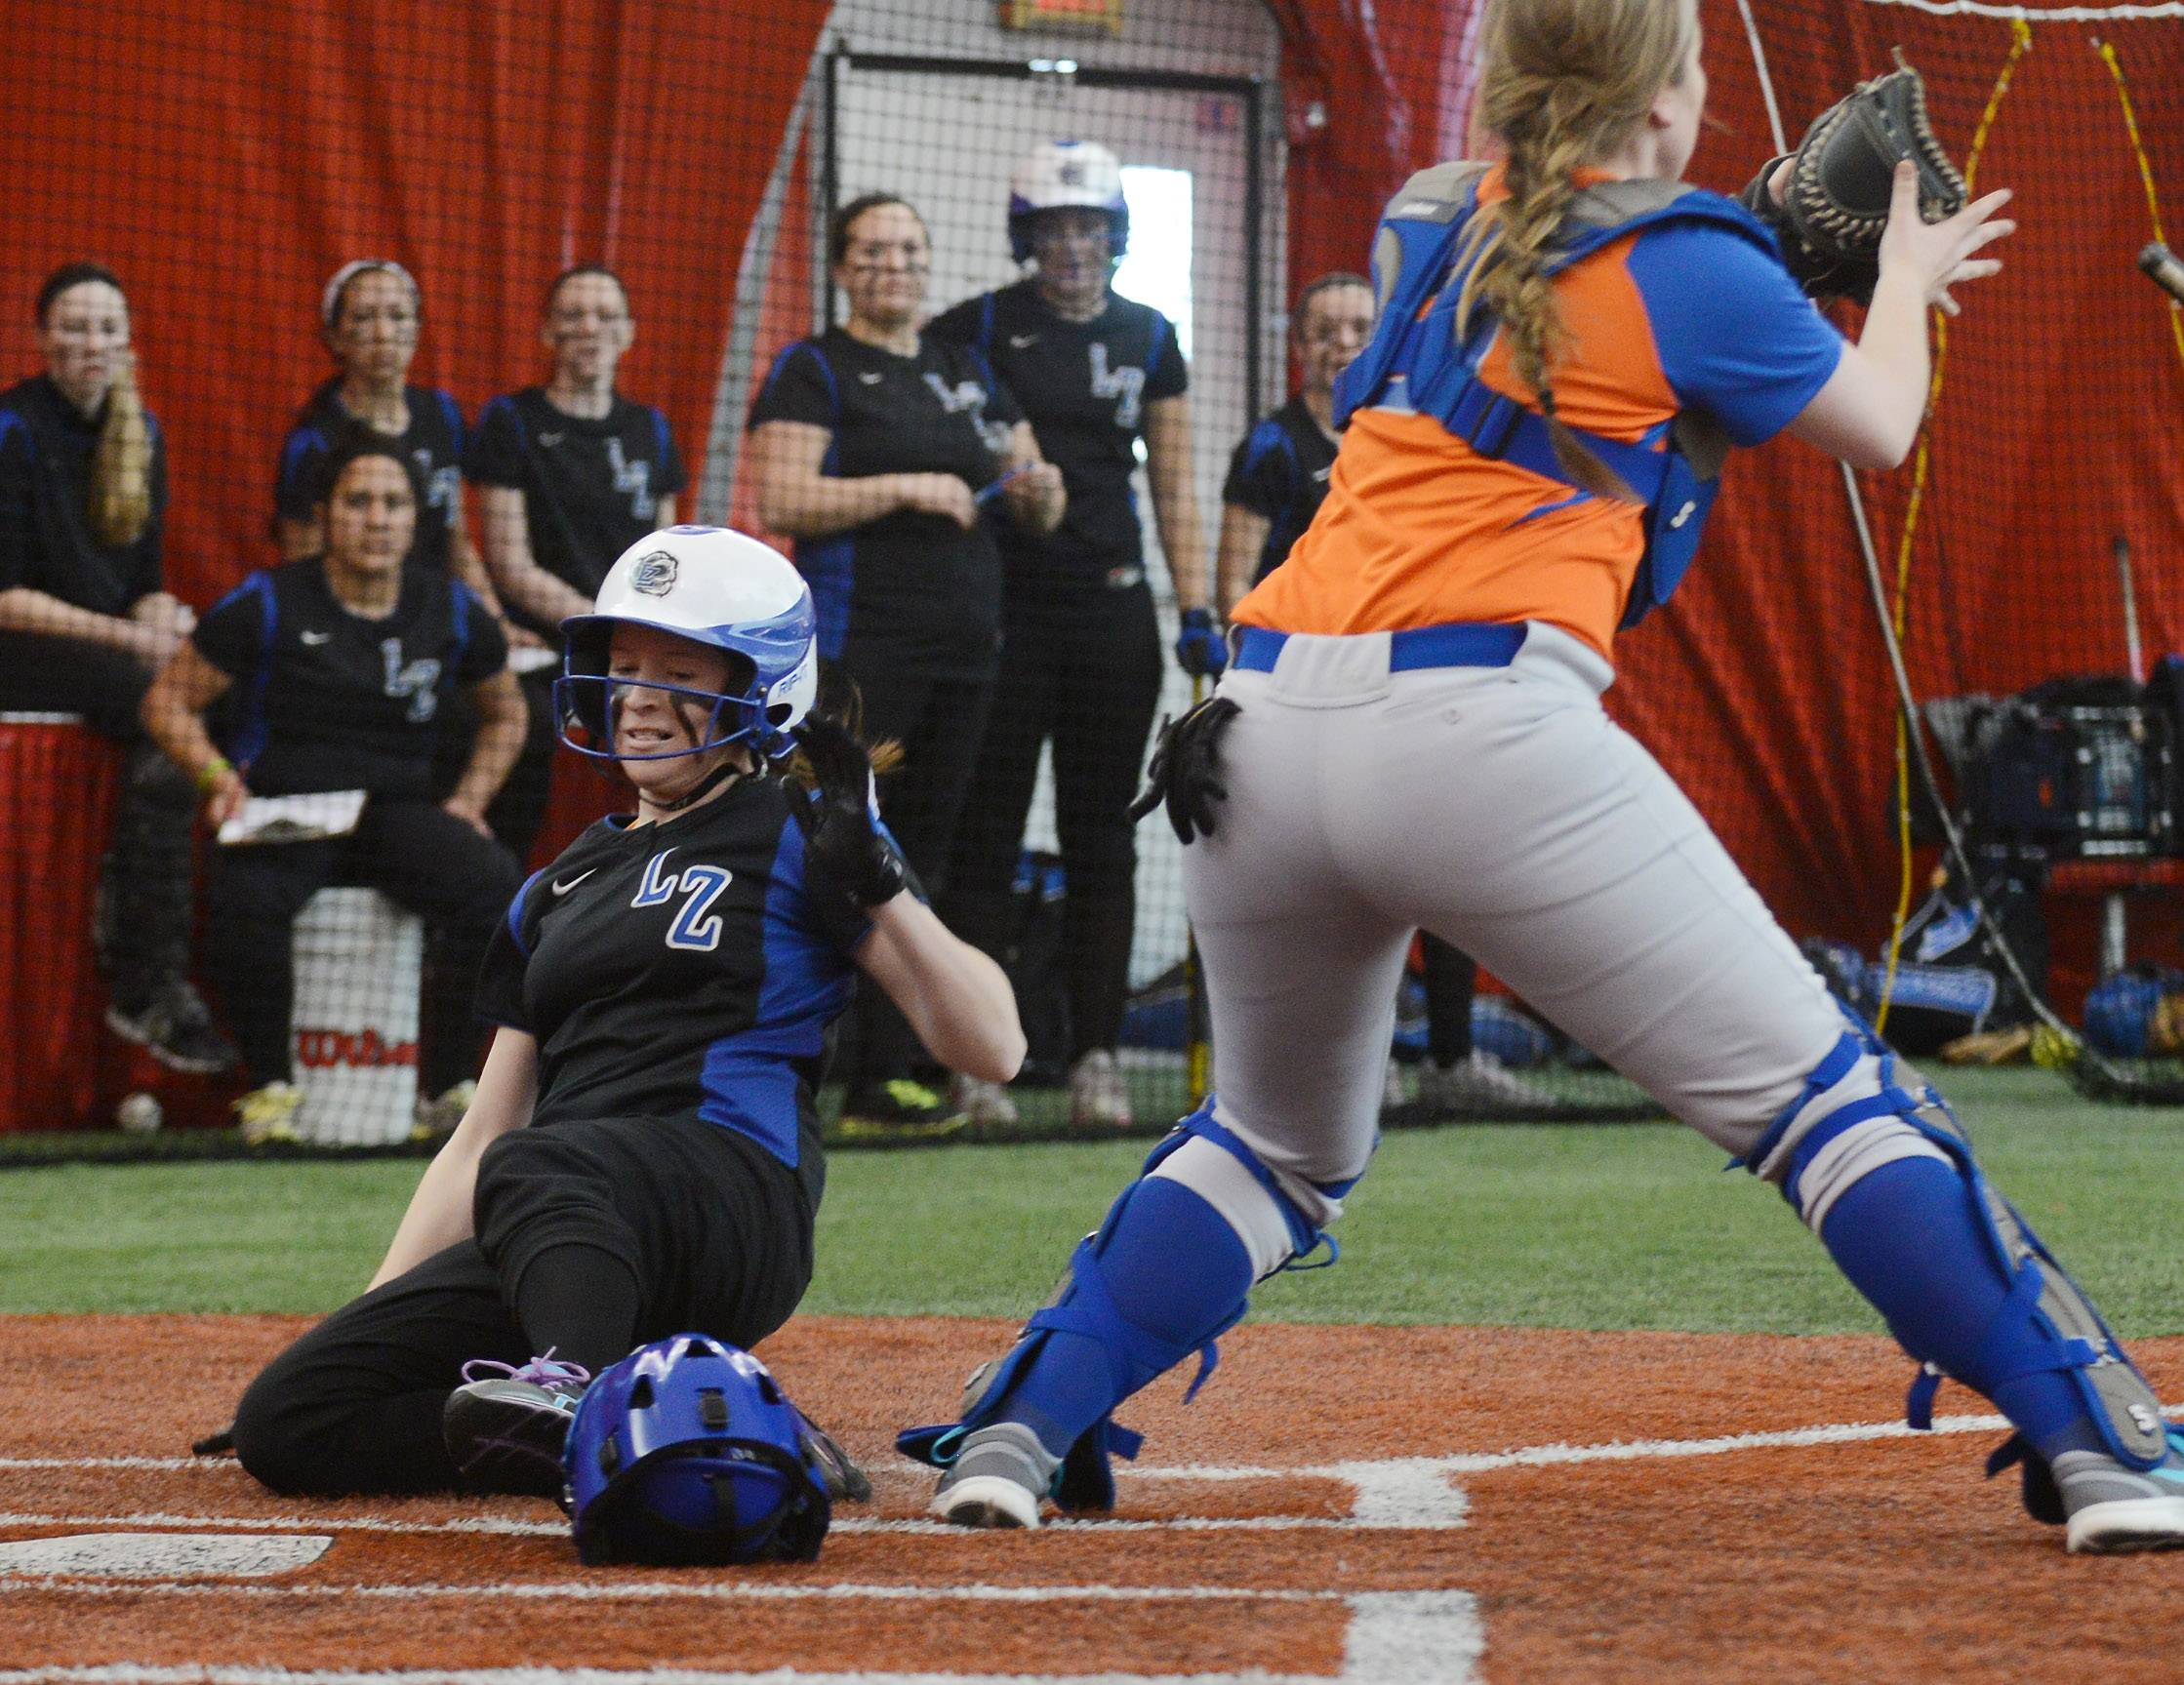 Lake Zurich's Brittney Pettinger slides safely into home as Hoffman Estates catcher Kaileen Hendle takes the late throw during softball action Tuesday in Rosemont.